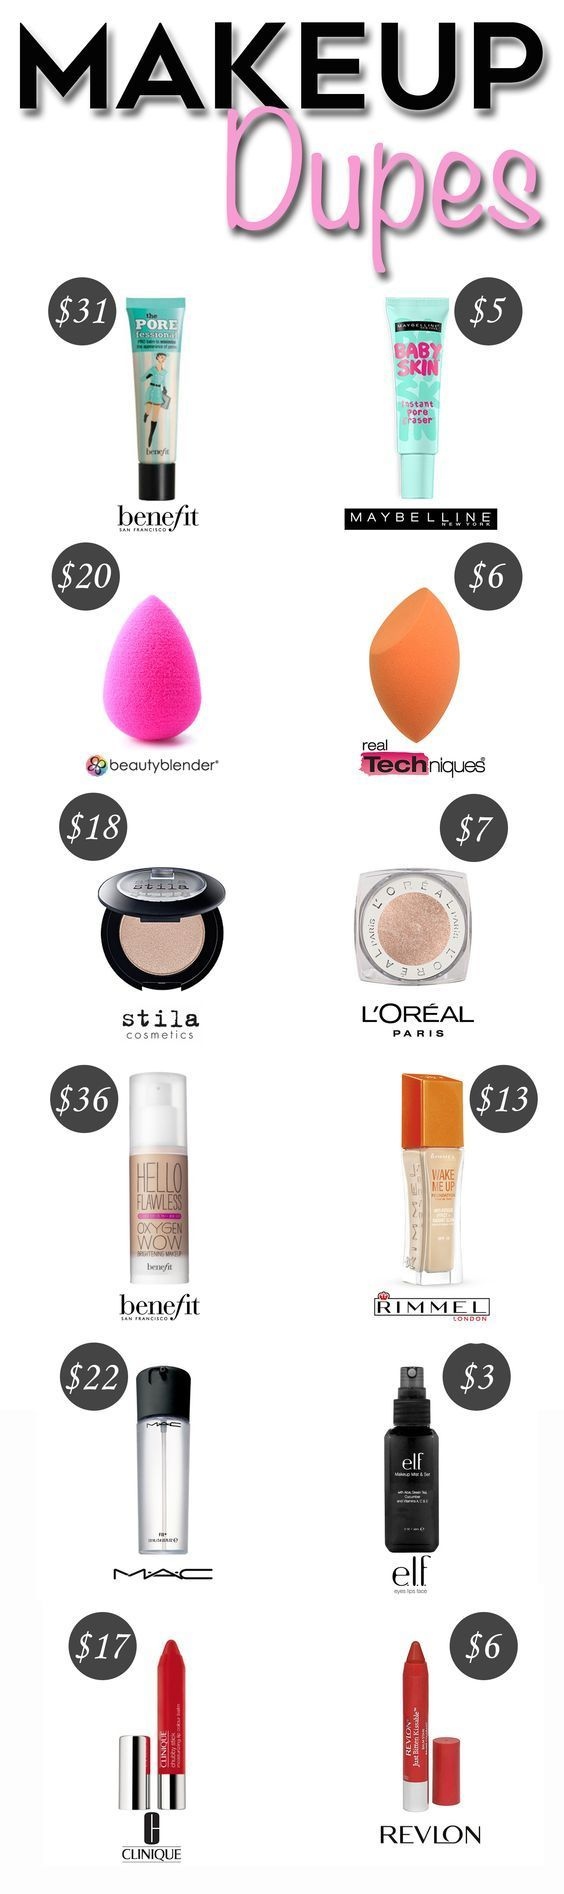 These 10 Makeup Dupe Hacks have saved me A TON OF MONEY! I use makeup regularly…